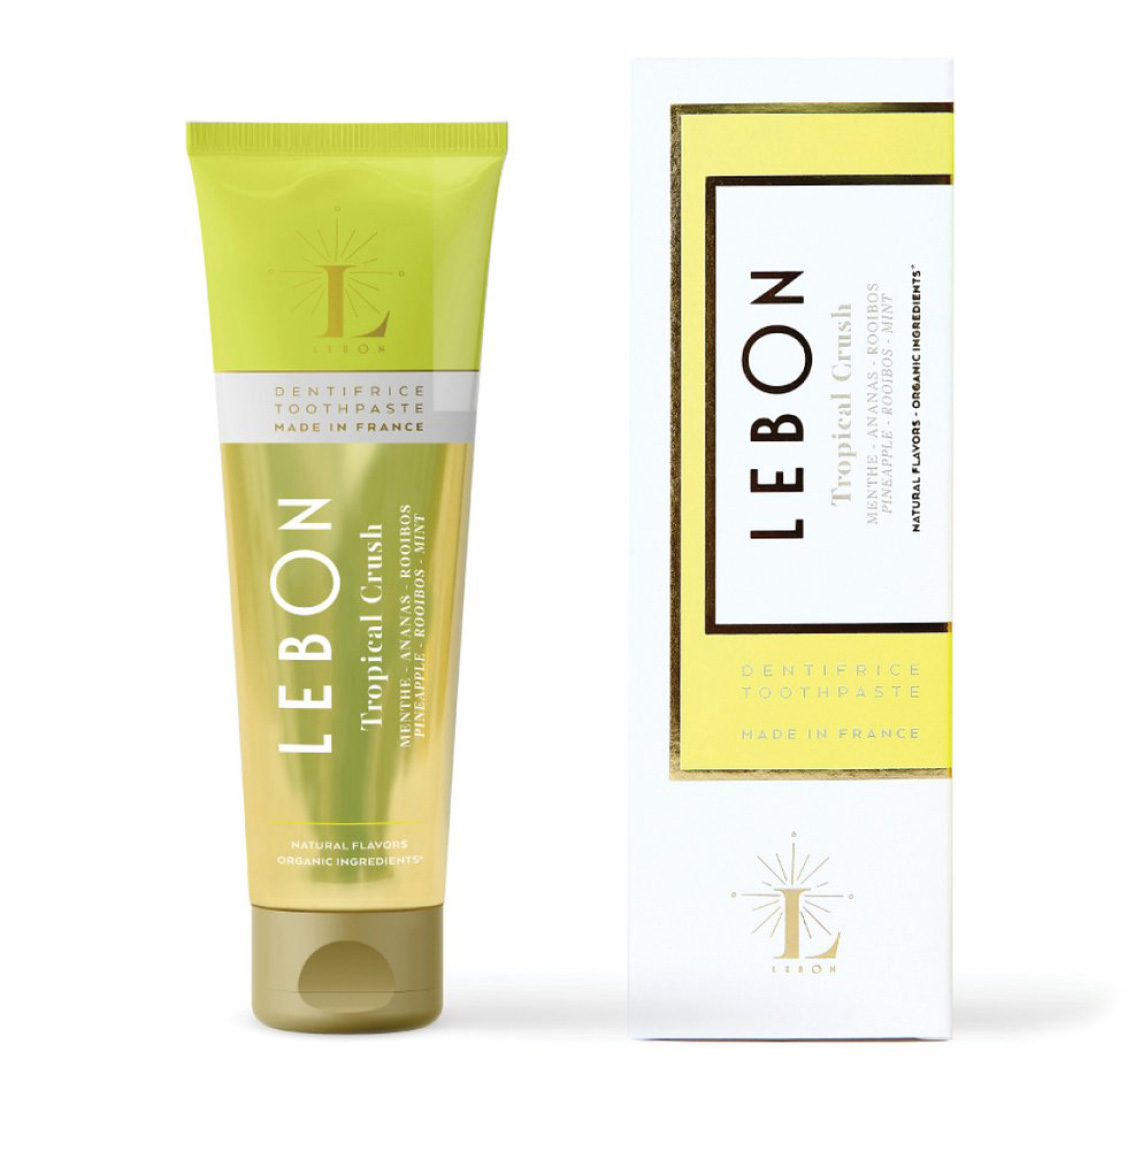 Lebon Pineapple Rooibos Mint Toothpaste 75ml